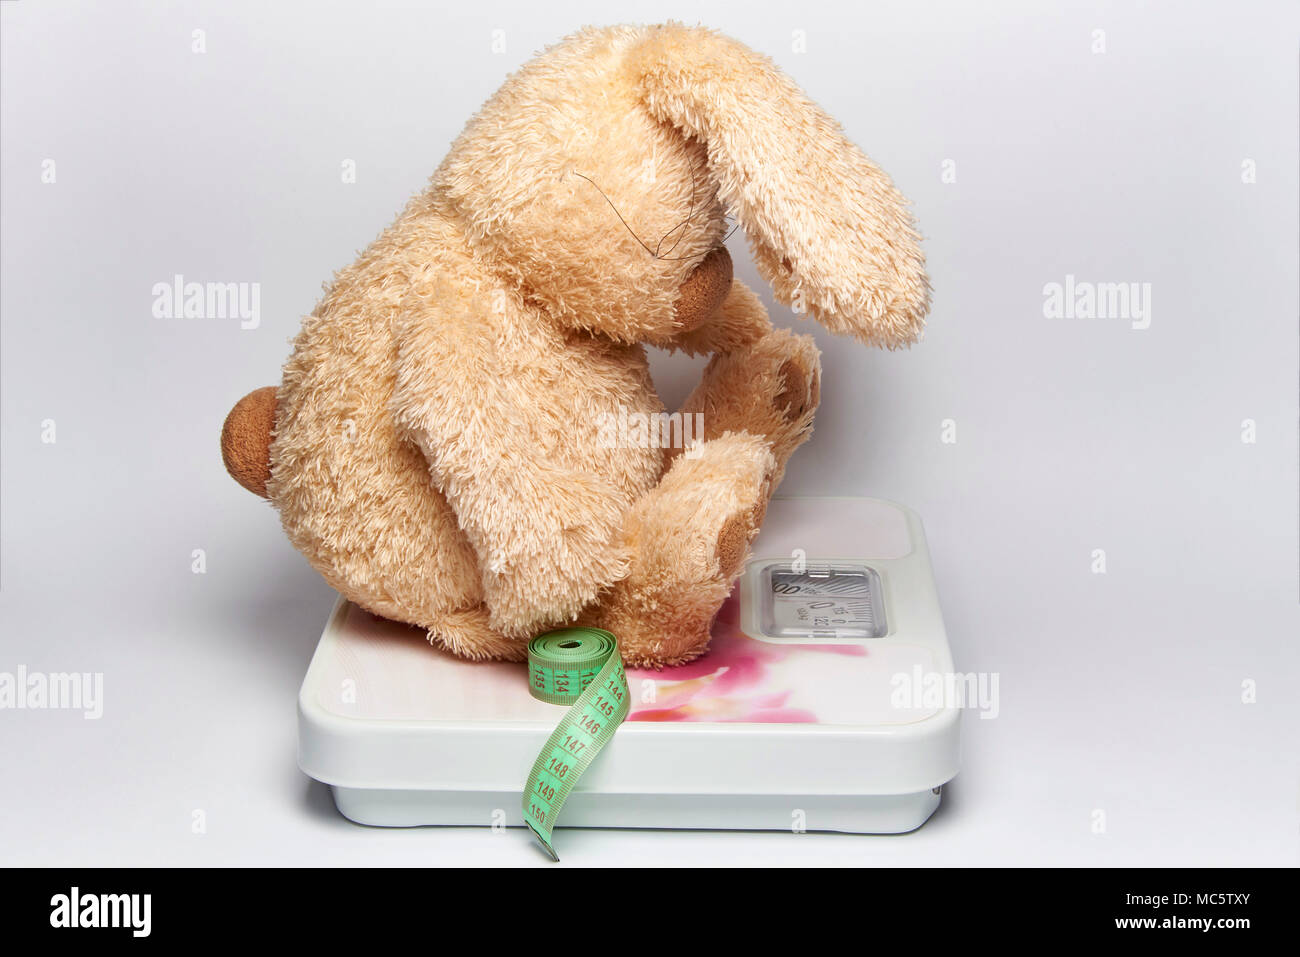 A soft toy rabbit with a centimeter tape sits on the floor scales. - Stock Image